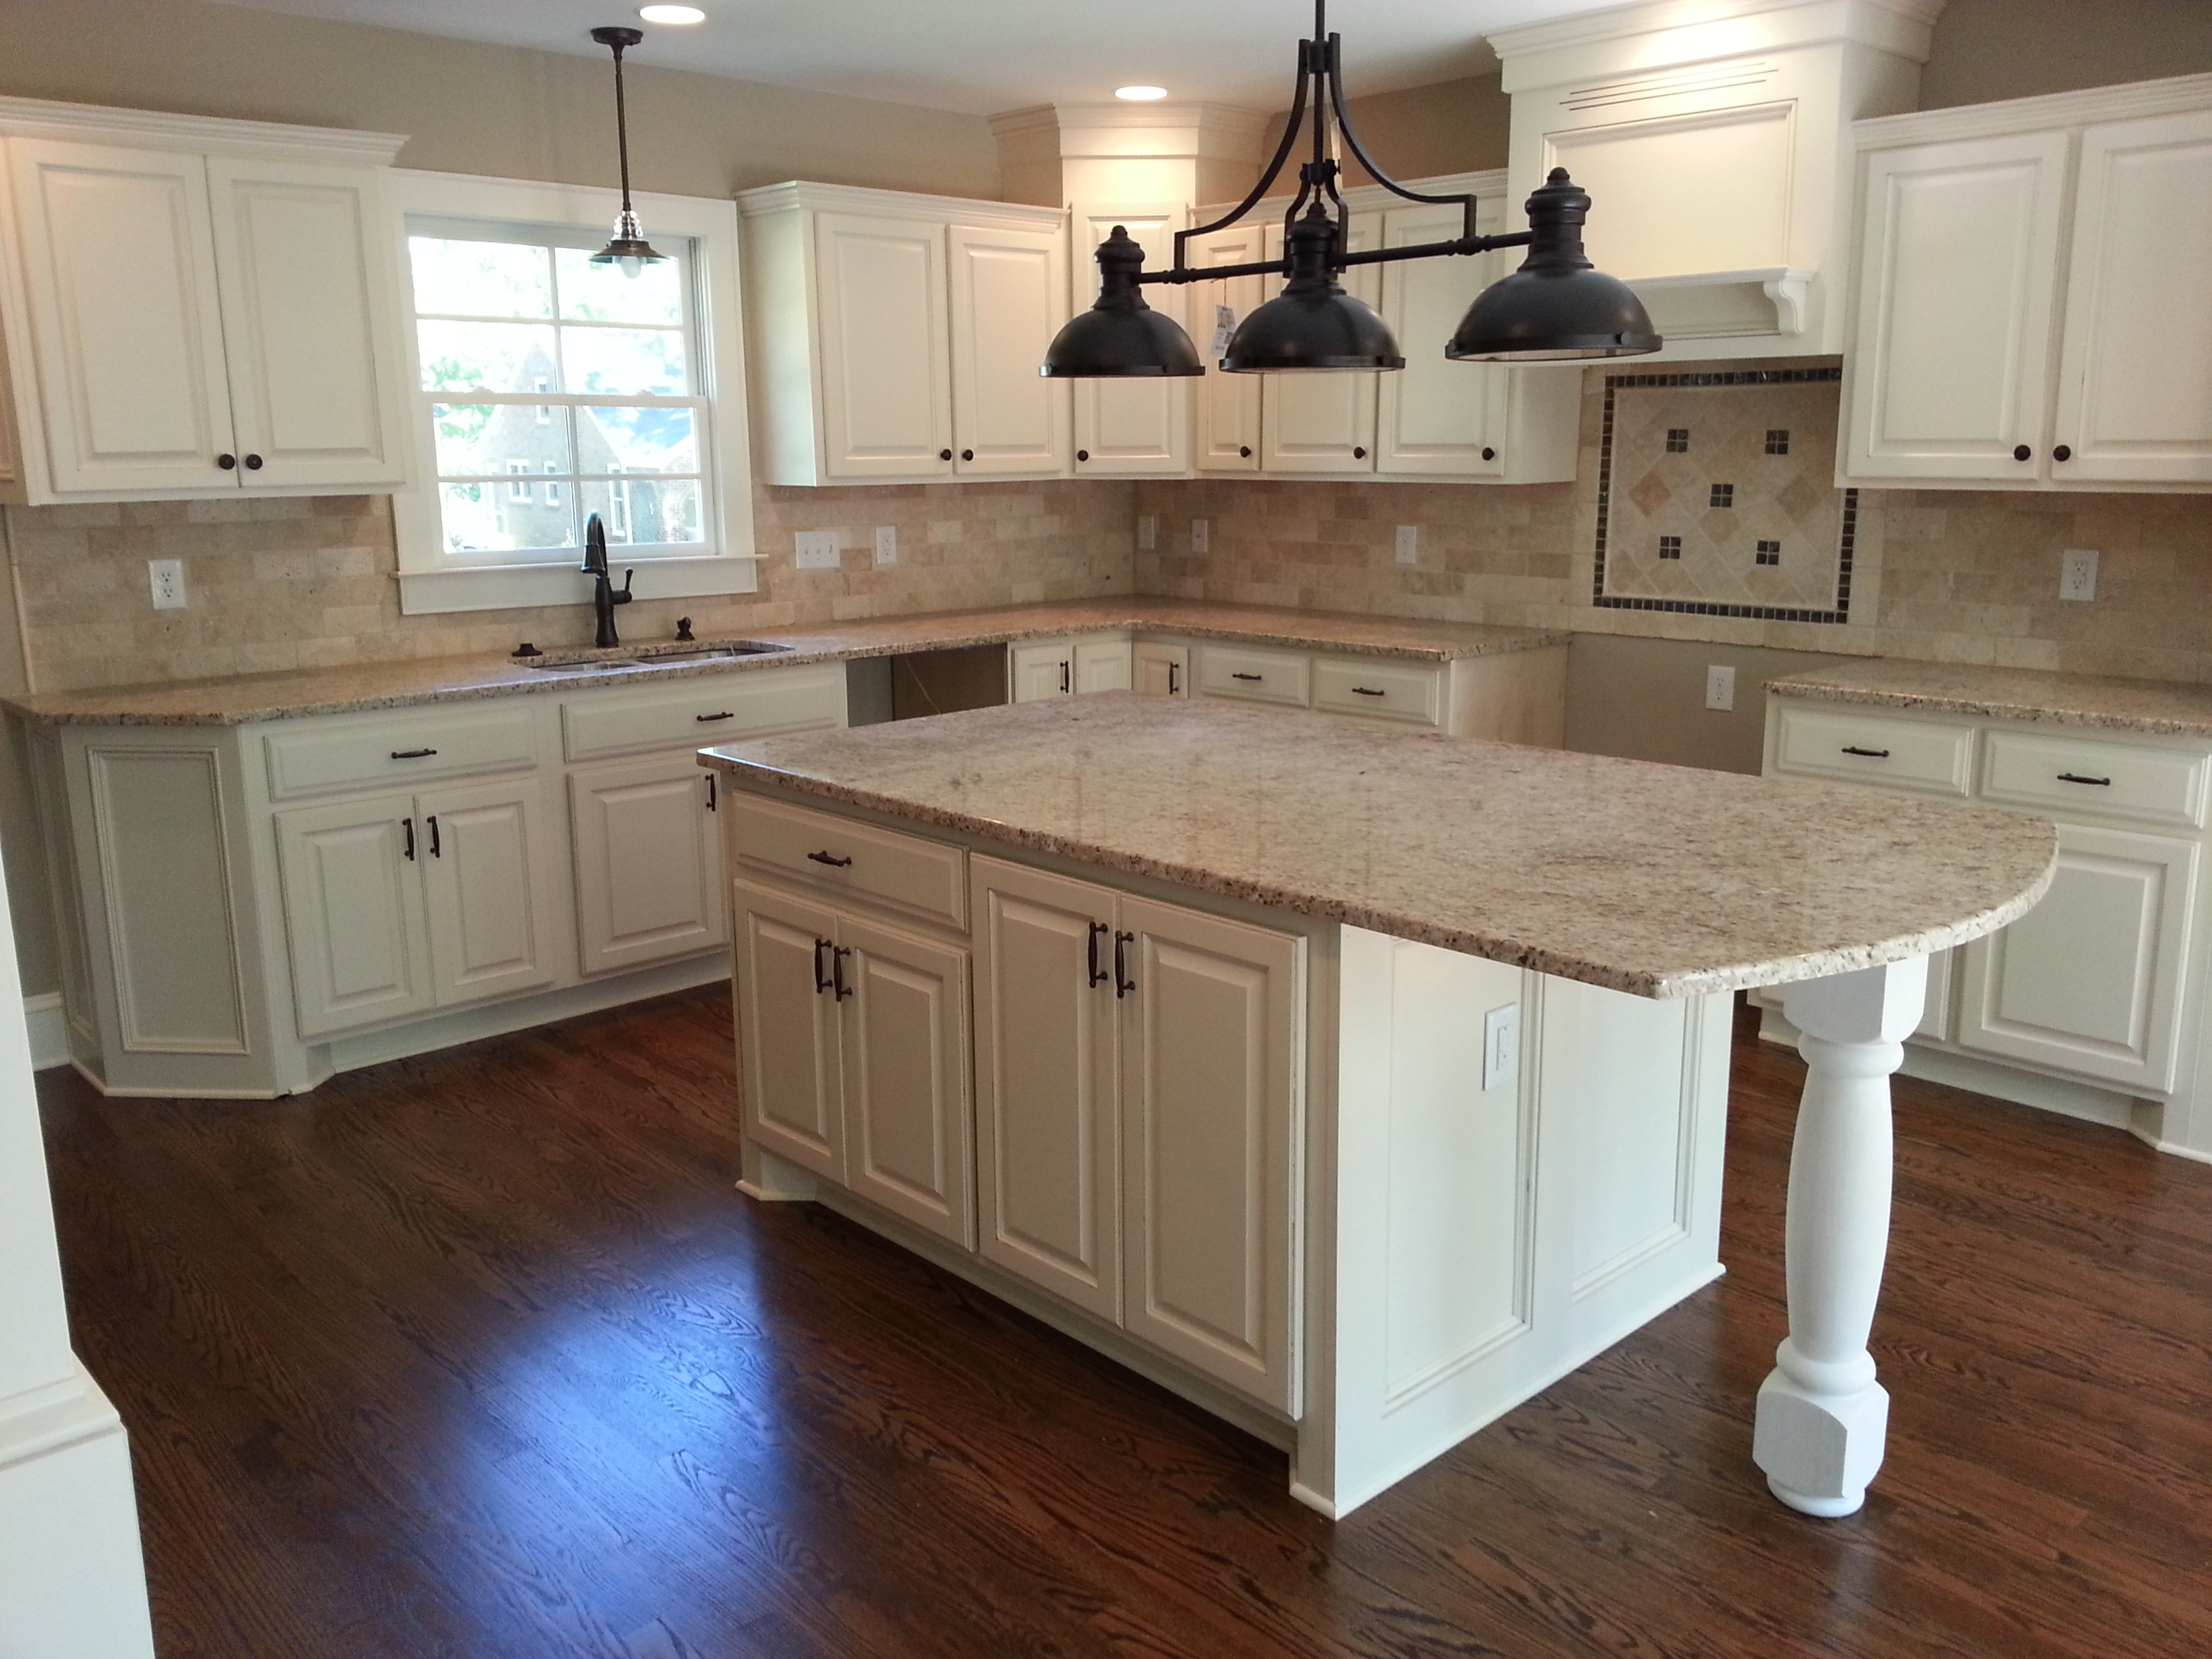 Blue Coral Stoneworks - Granite, Marble and Quartz Counters for ...